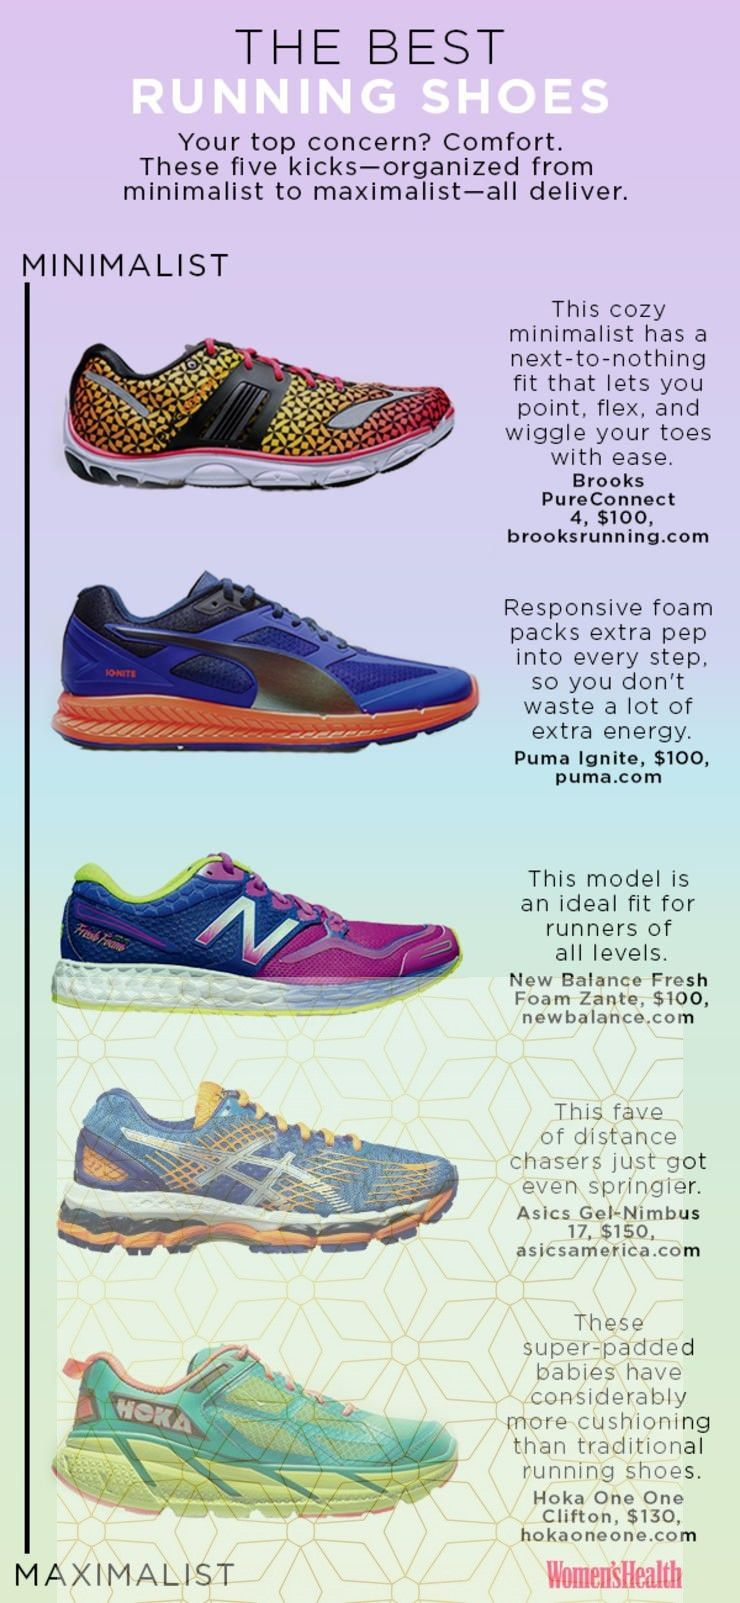 new products 5b22c e5262 Simple and Crazy Tips and Tricks  Shoes Ballerinas Crochet Baby balenciaga  shoes neon.Shoes Comfortable Fashionable slip on shoes style.